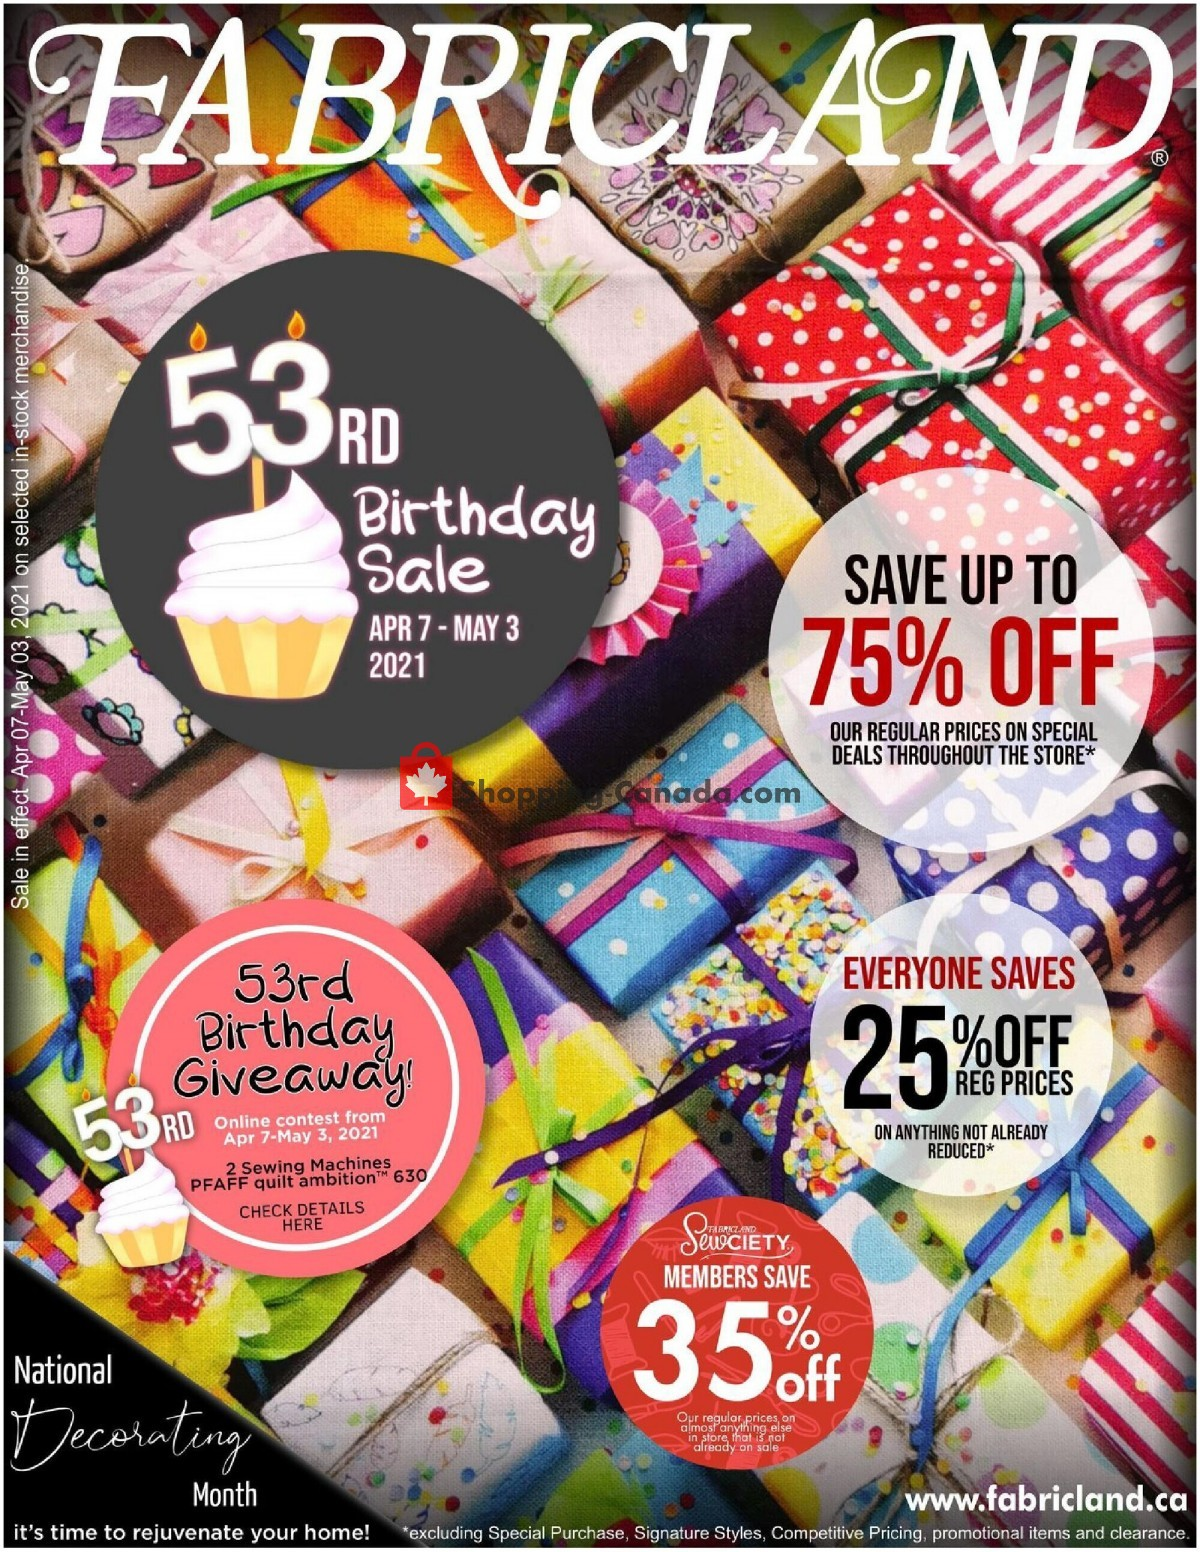 Flyer Fabricland Canada - from Wednesday April 7, 2021 to Monday May 3, 2021